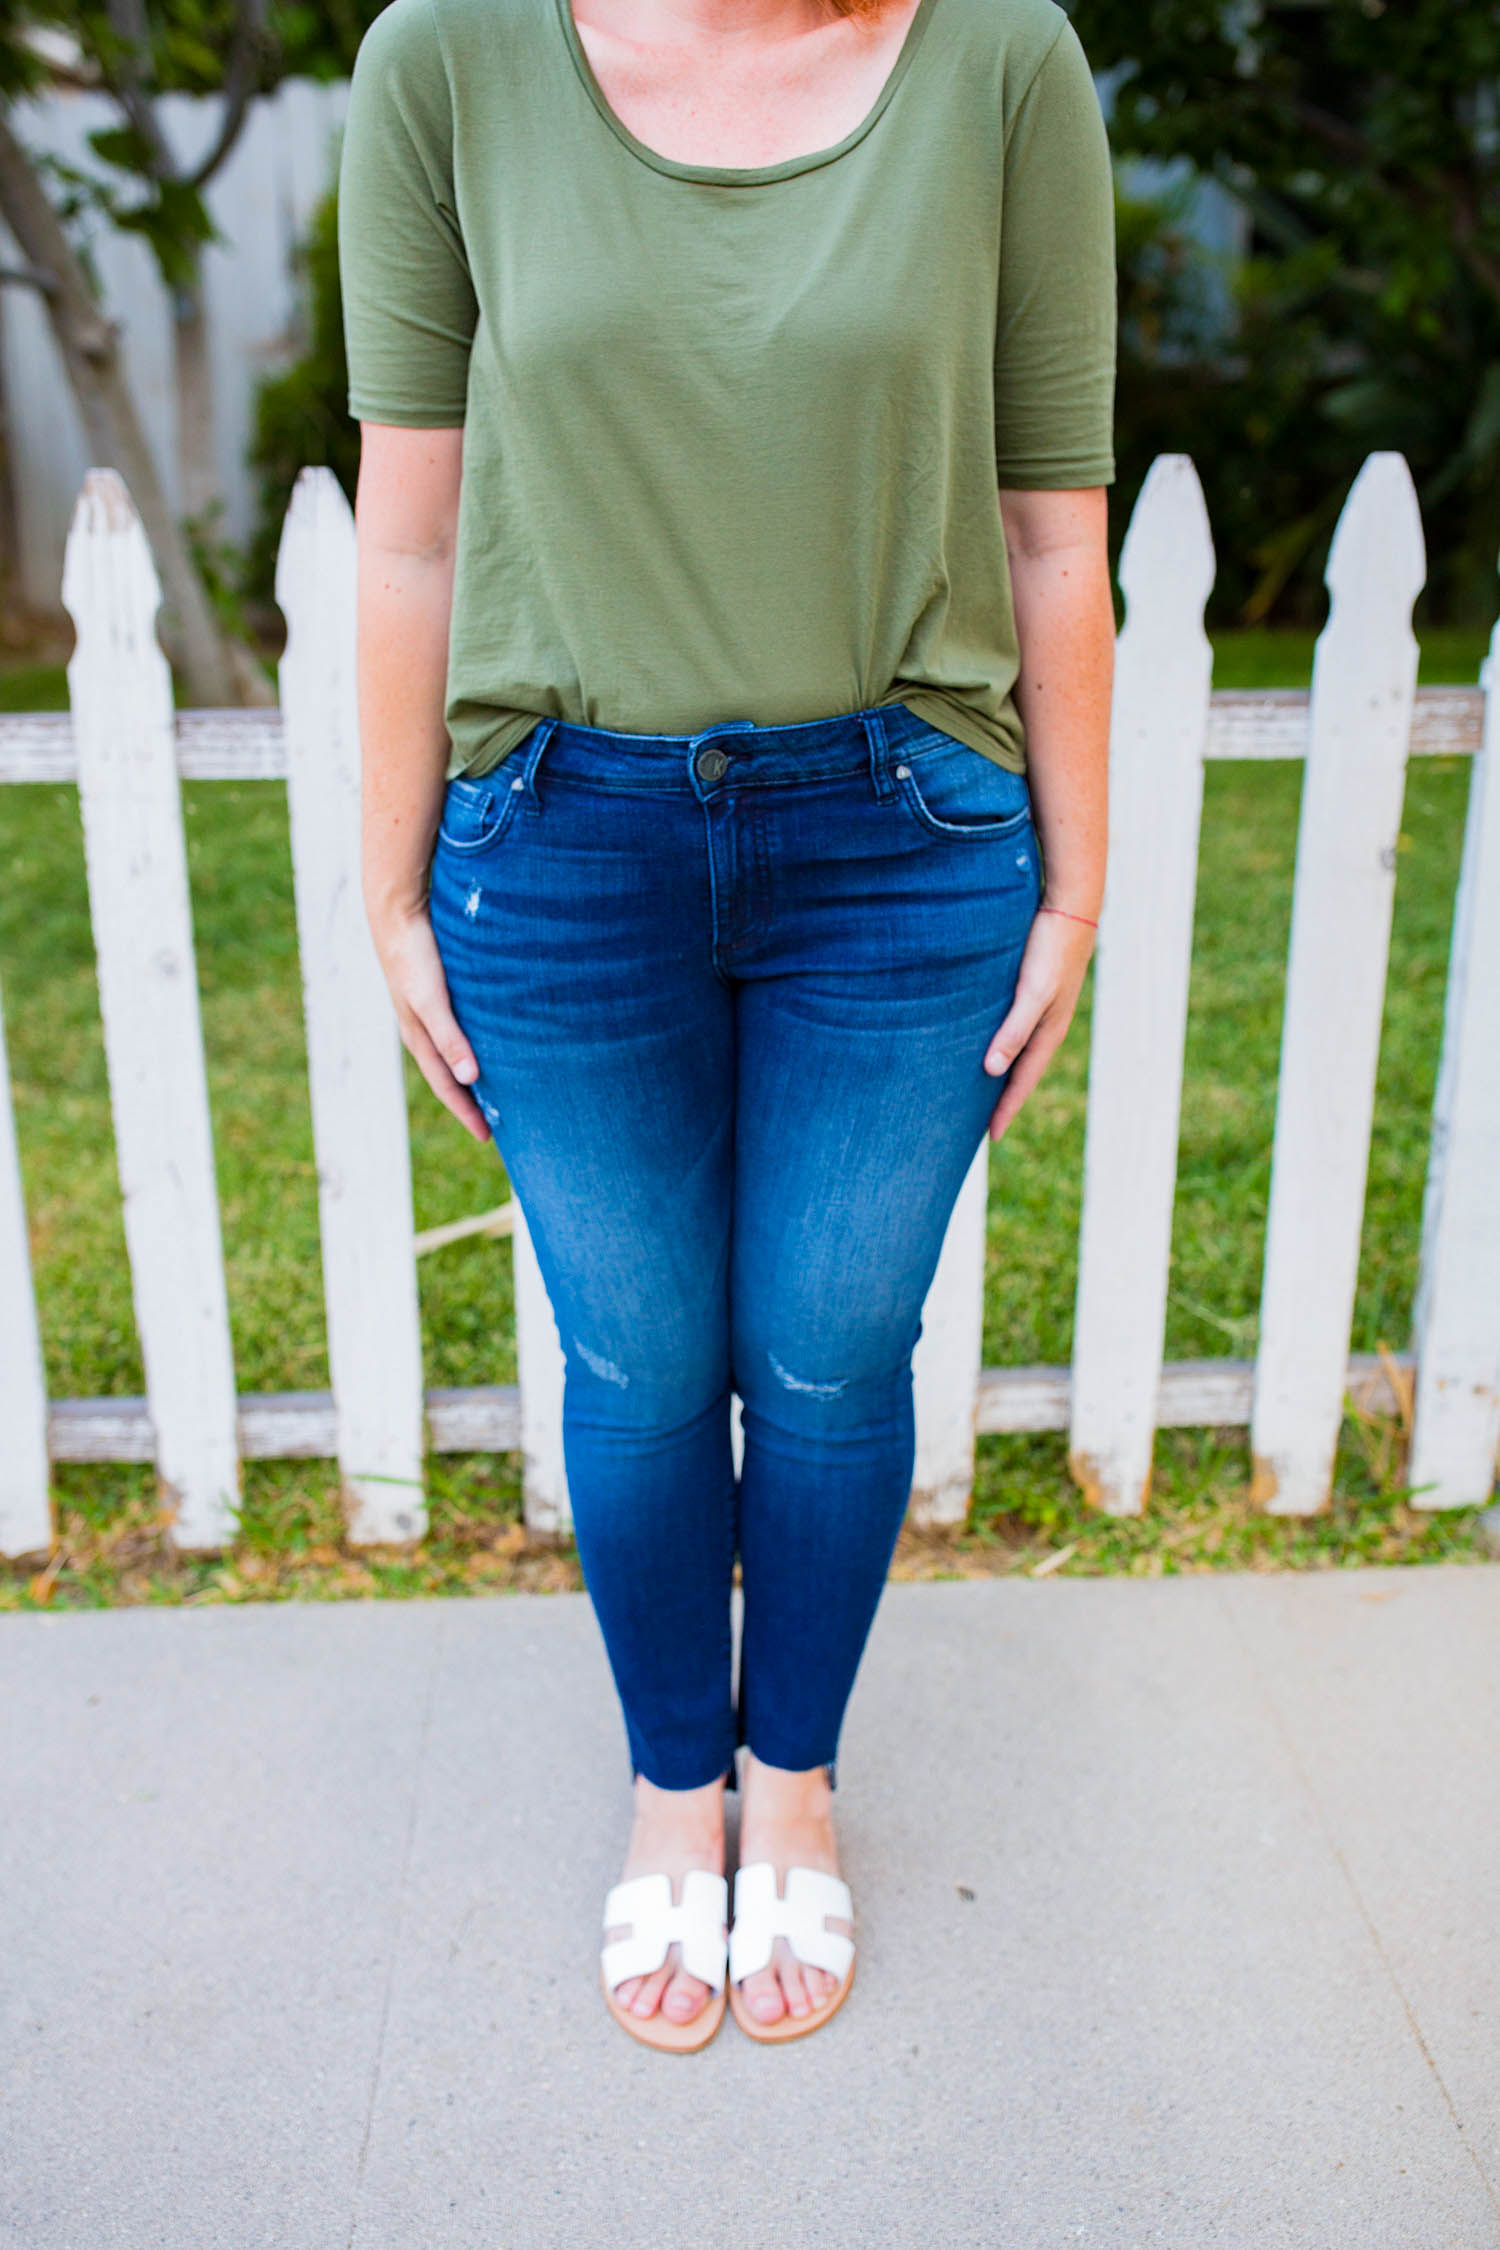 Nordstrom Anniversary Sale 2018: Fall outfits time is HERE, and these frayed jeans are a GREAT price!